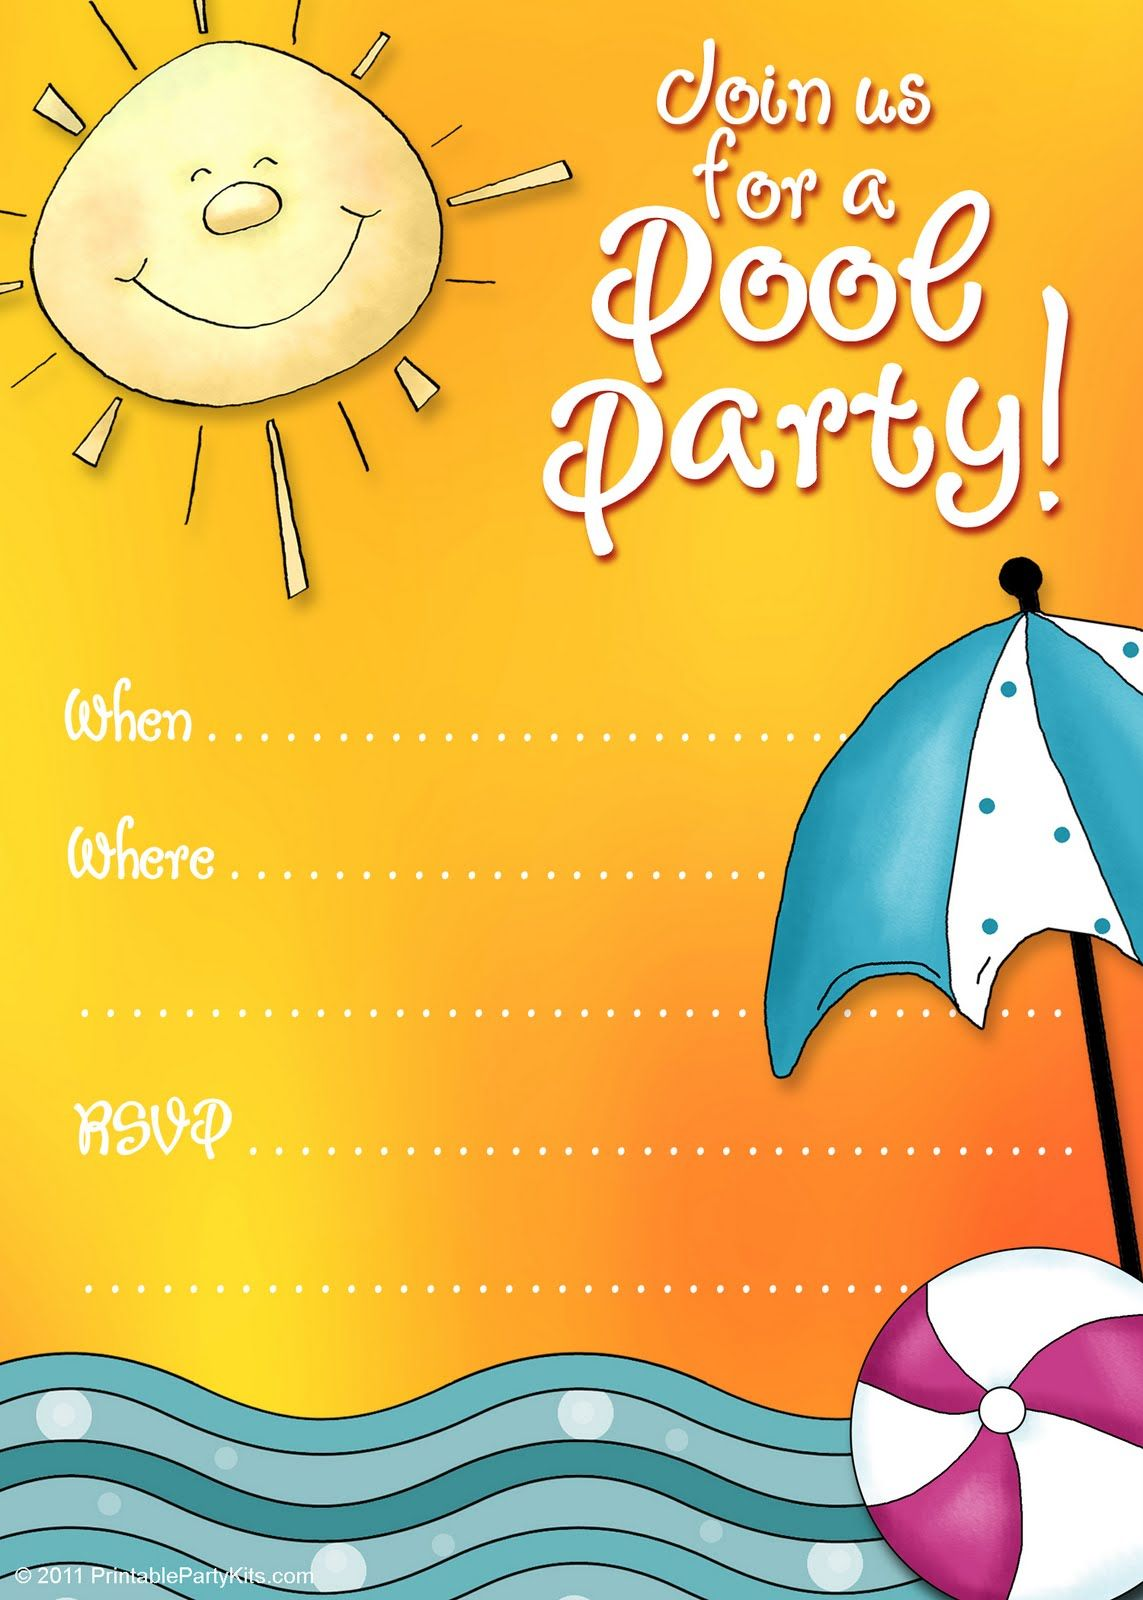 Free Printable Party Invitations: Summer Pool Party Invites ...